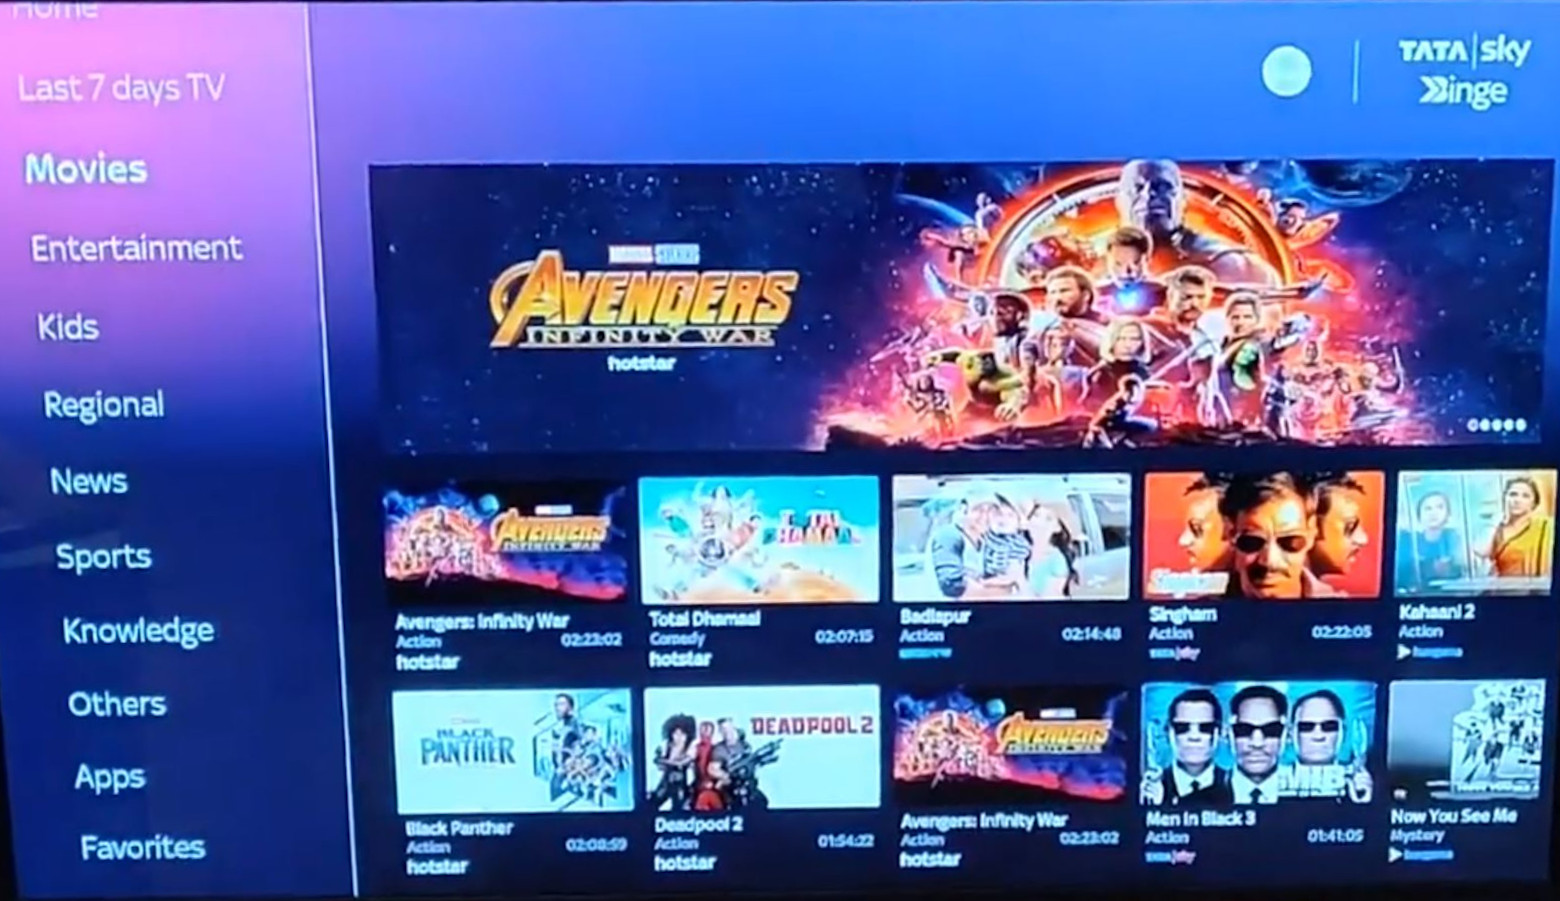 COMING SOON: Tata Sky Binge+ Android Box; Training manual leaked